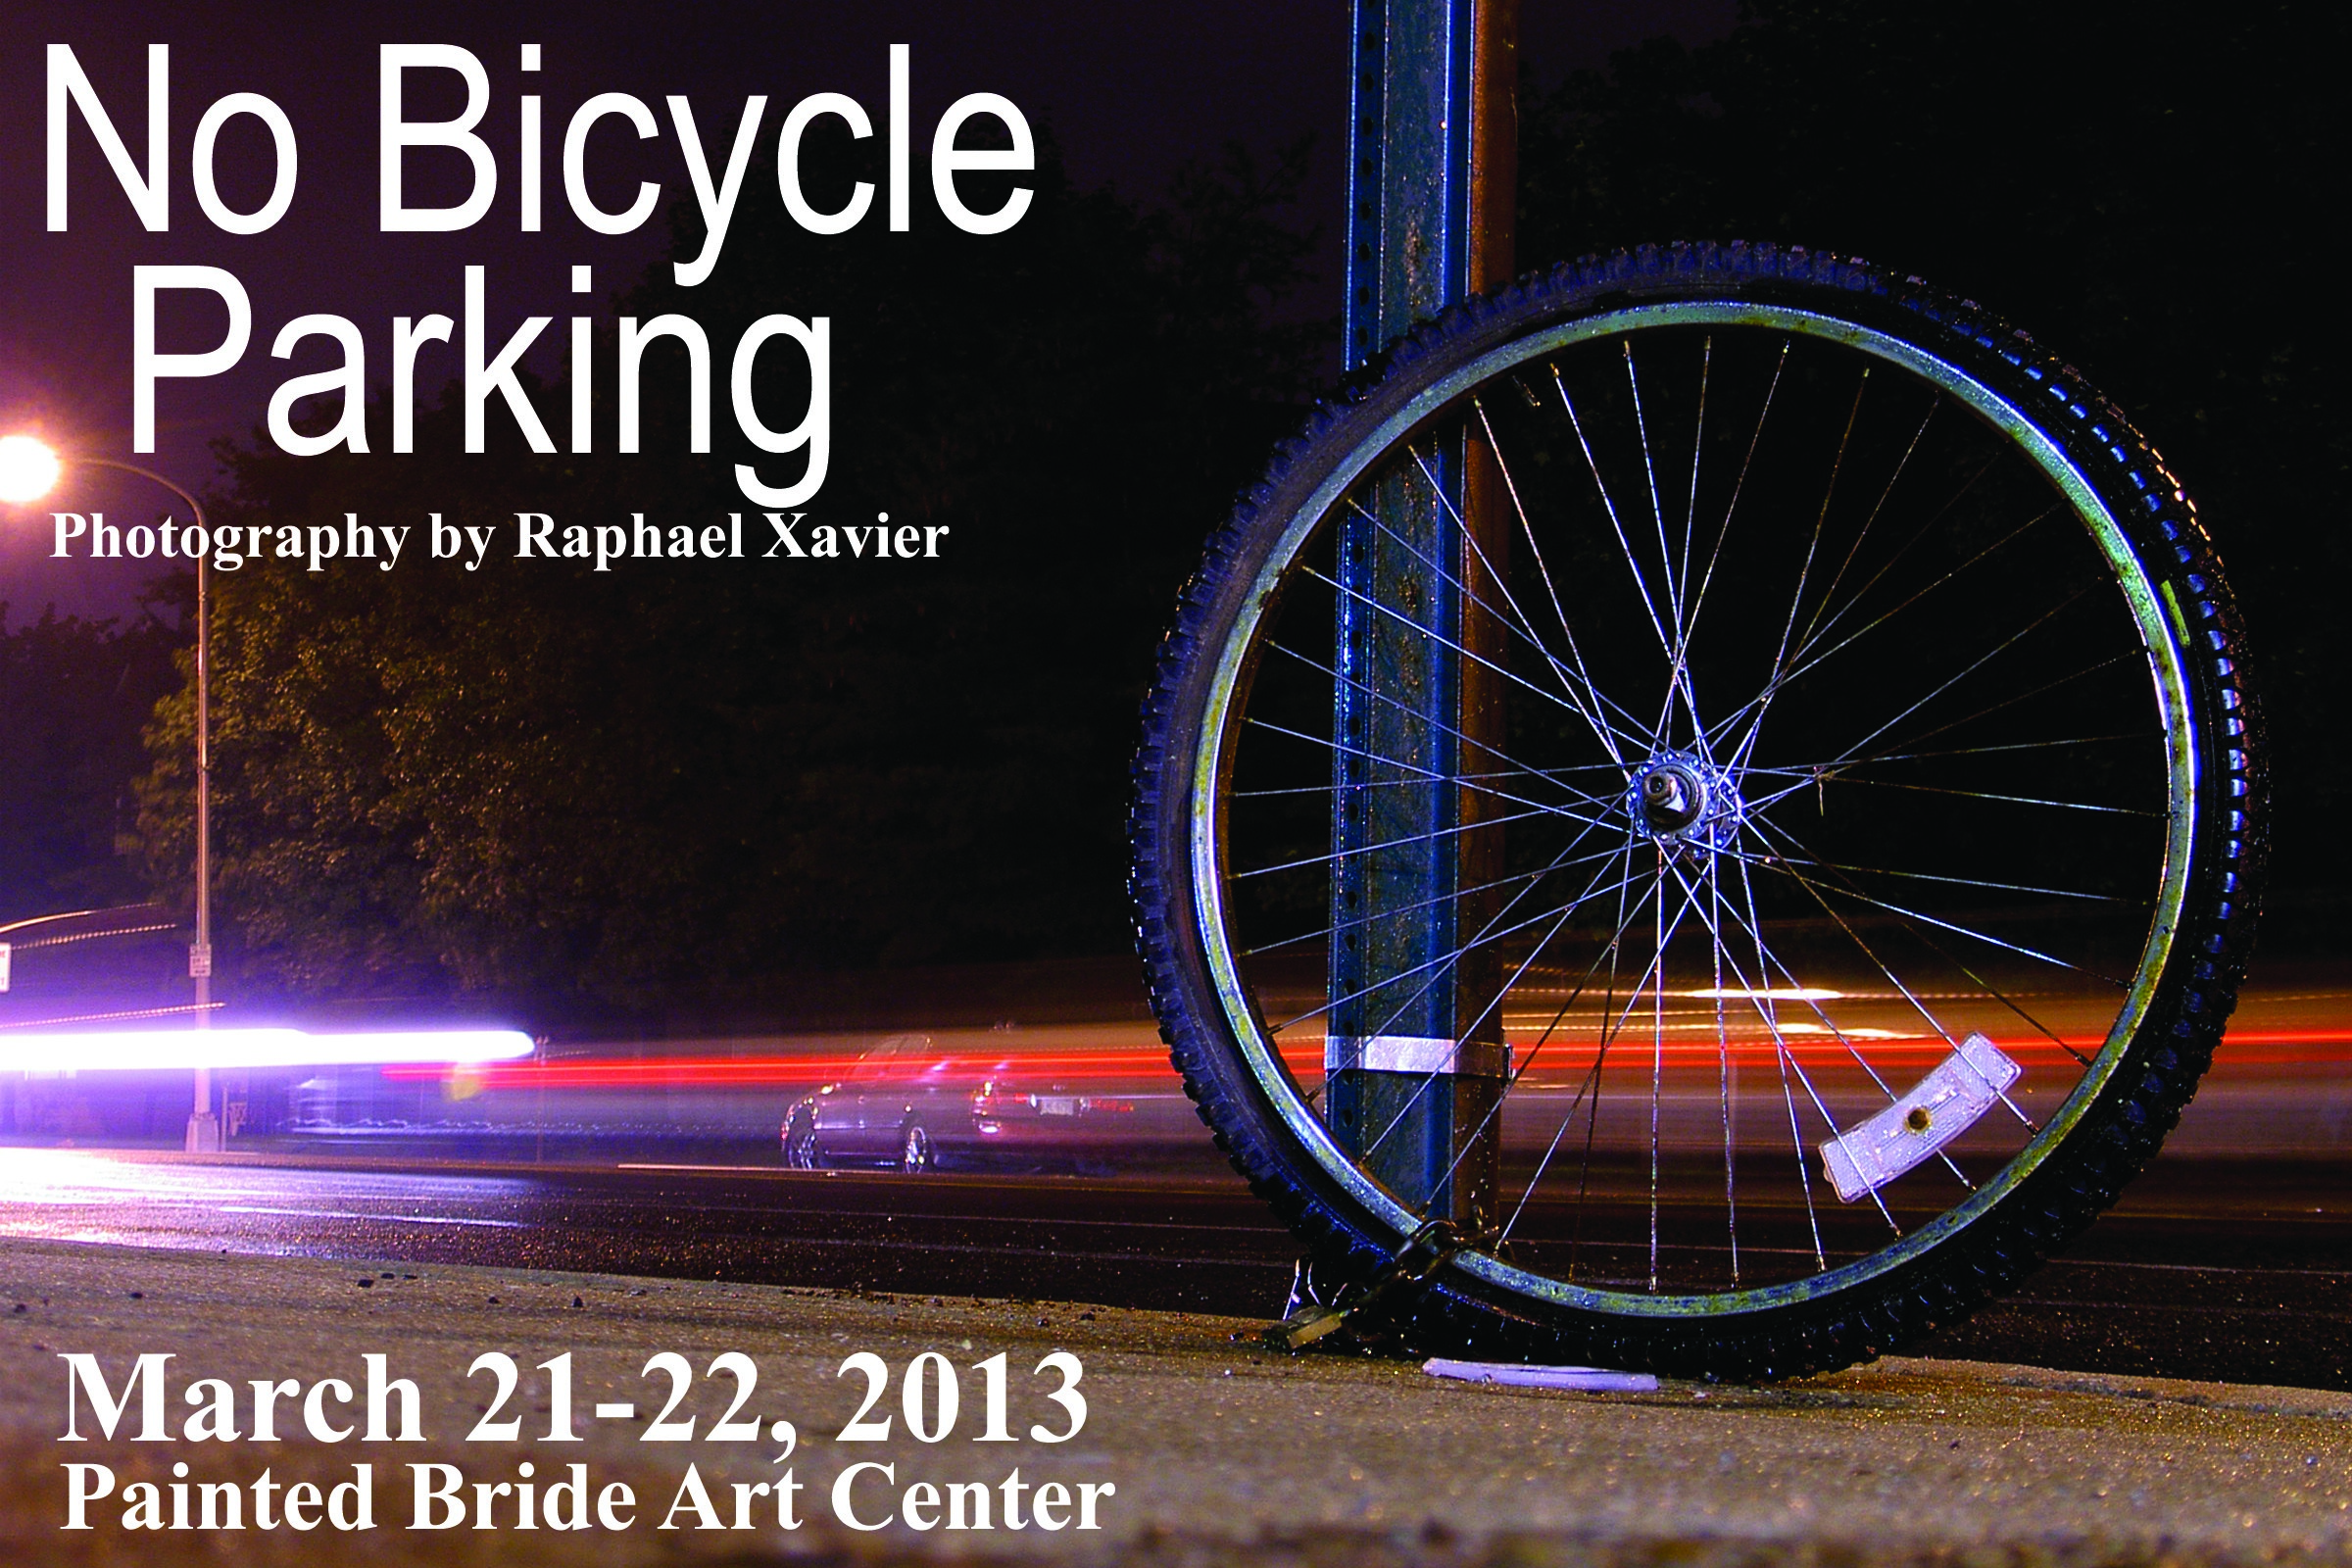 No Bicycle Parking, a photography exhibit by Raphael Xavier, is open March 21-22 and the Painted Bride